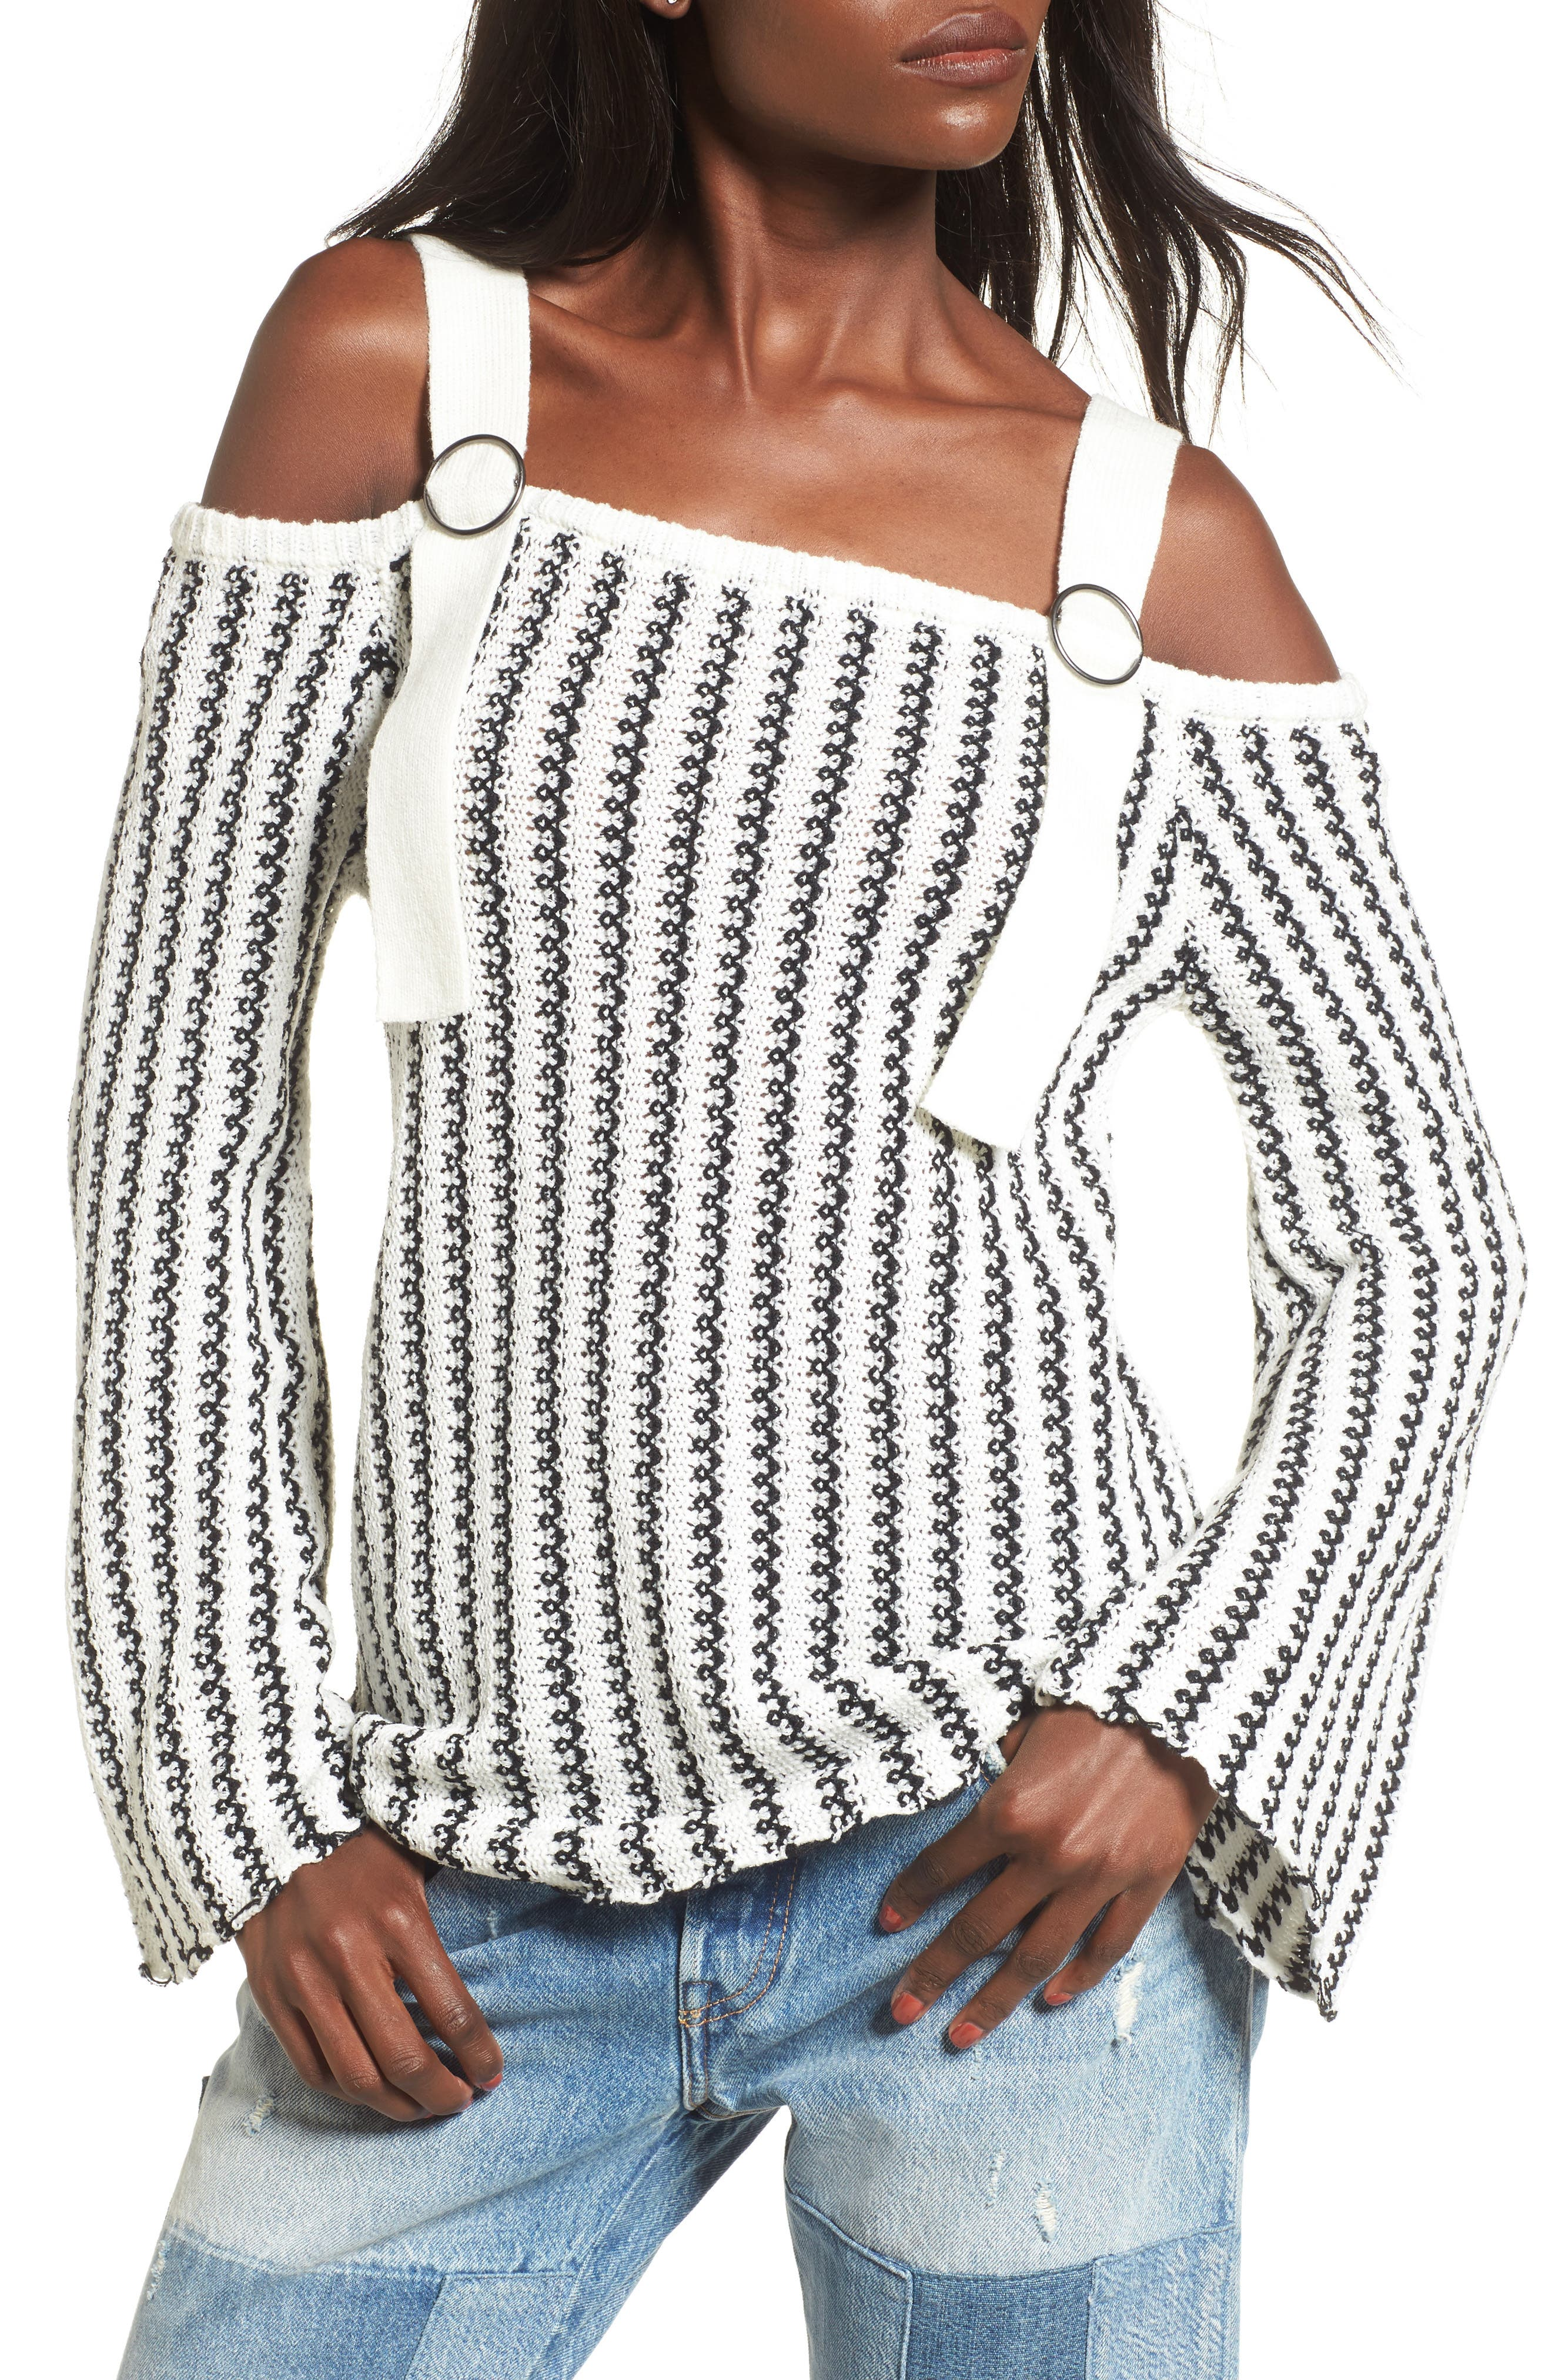 Main Image - Moon River Buckle Strap Sweater